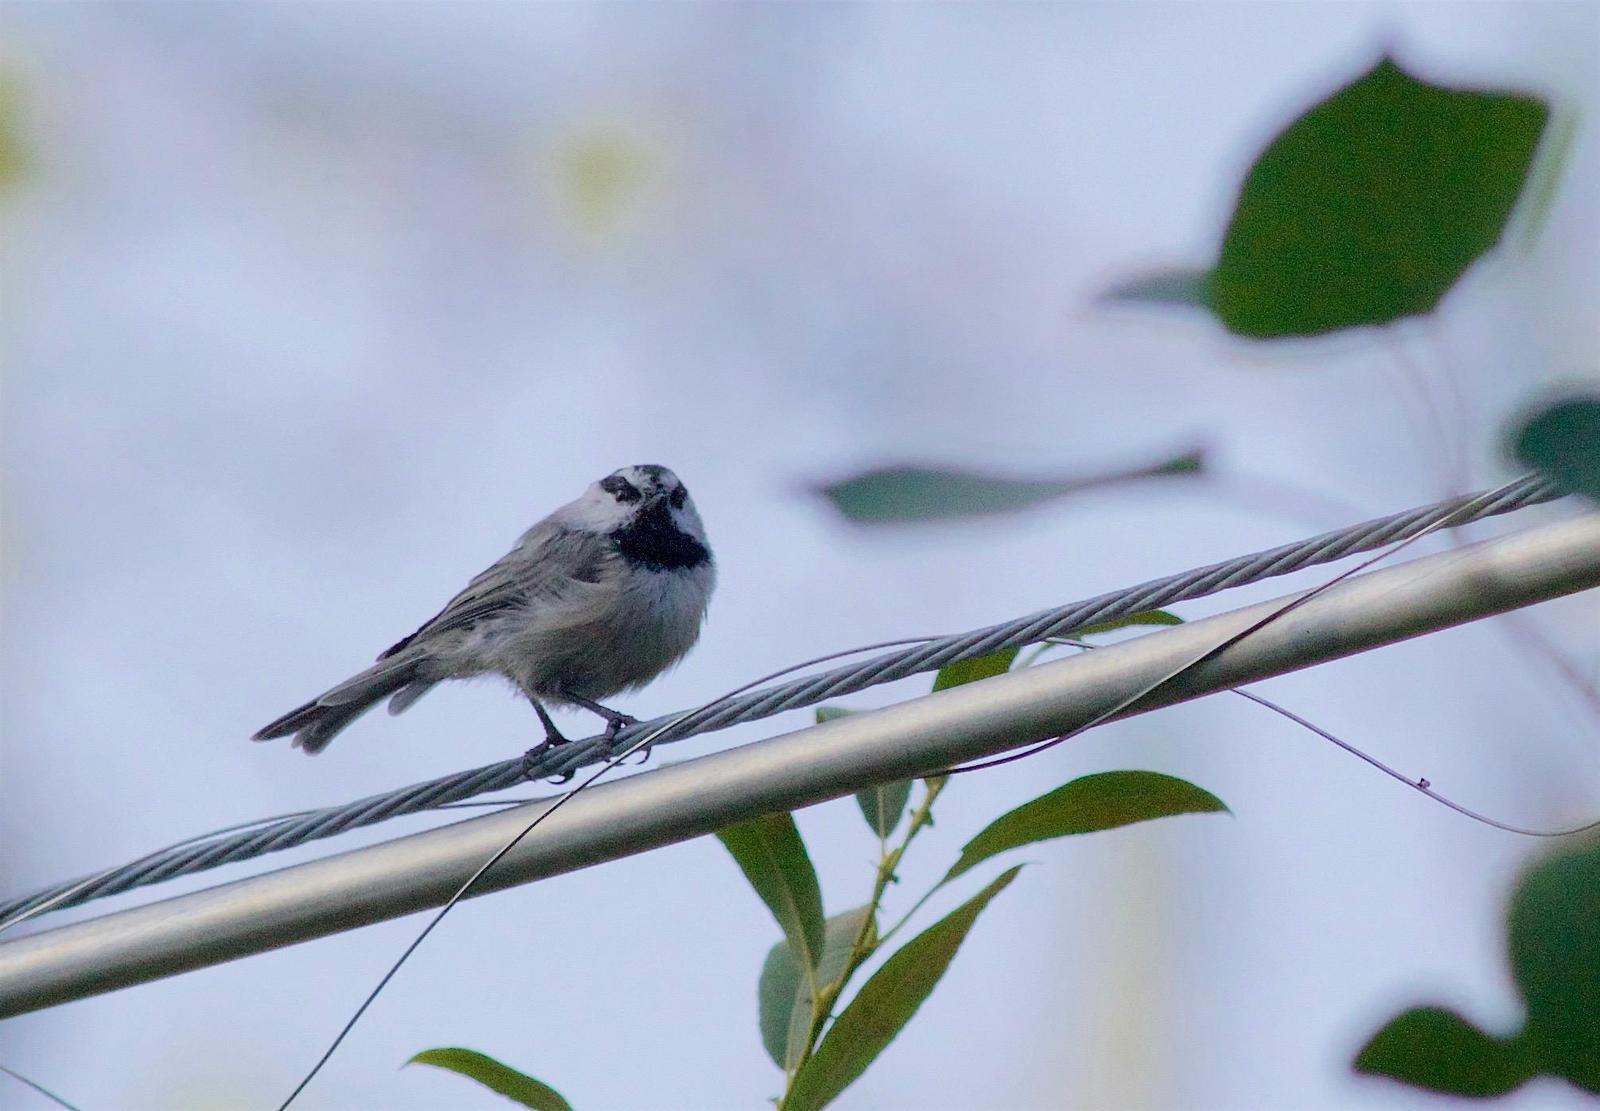 Mountain Chickadee Photo by Kathryn Keith